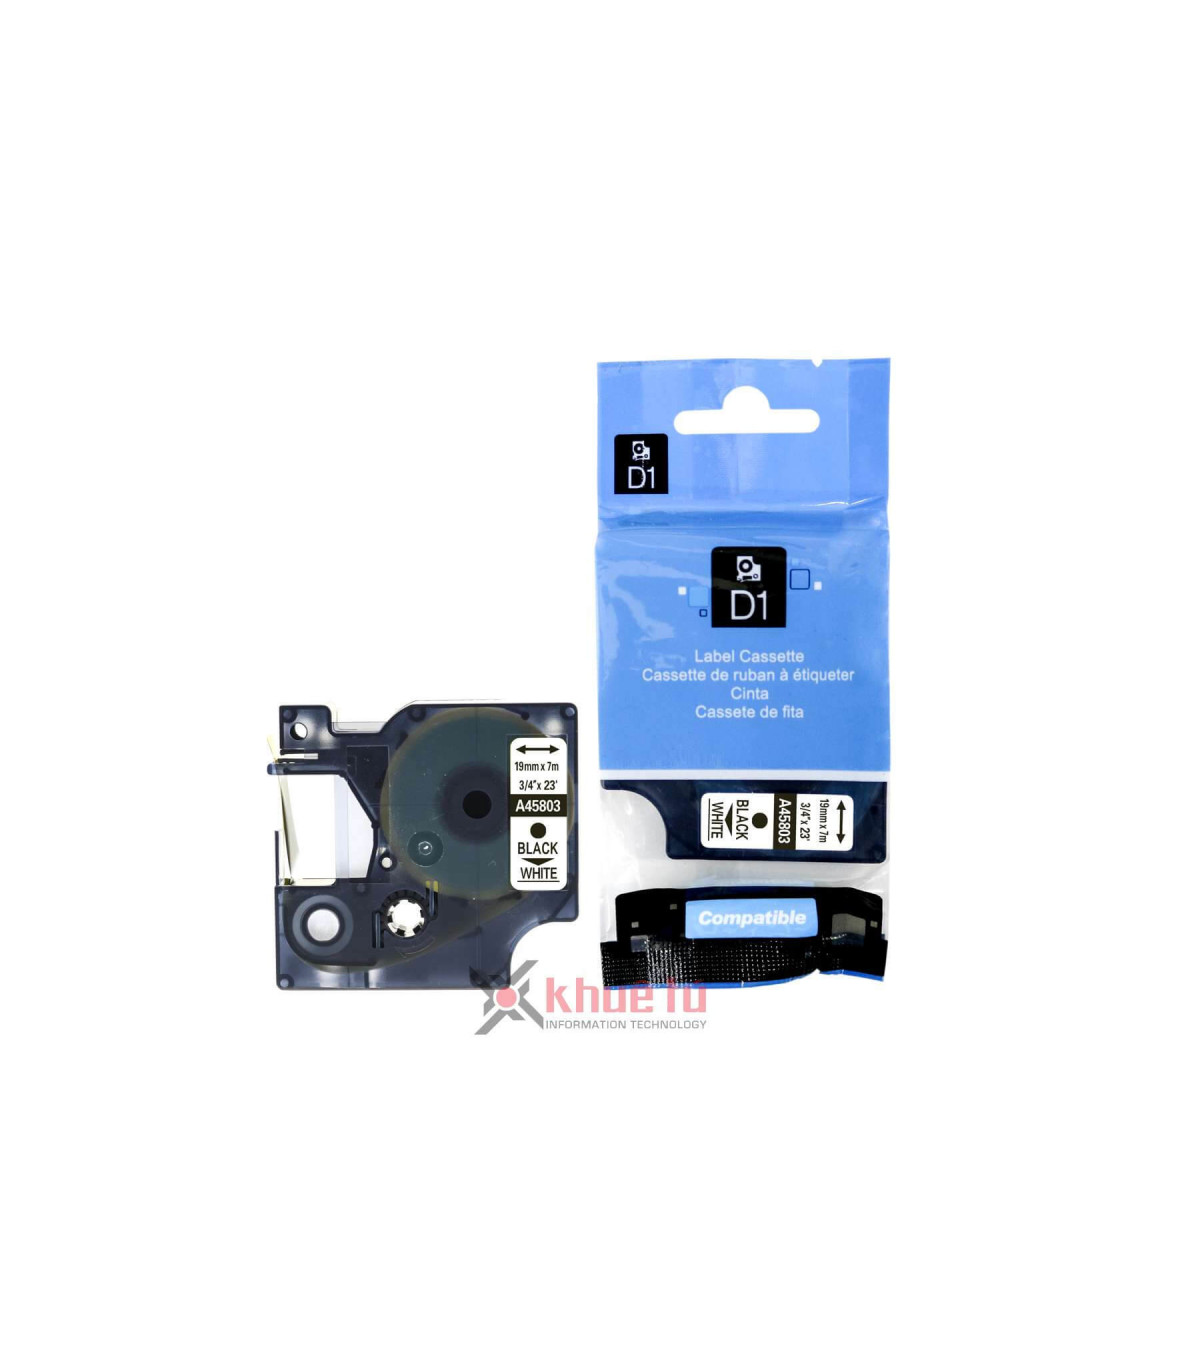 DM-A45803 D1 Tape A45803 19mm x 7m Black on White | ⓿❽❻❽❺⓿❺⓿❺❺ | Nhãn in, tem in, giấy in, băng nhãn, tape in | khuetu.vn